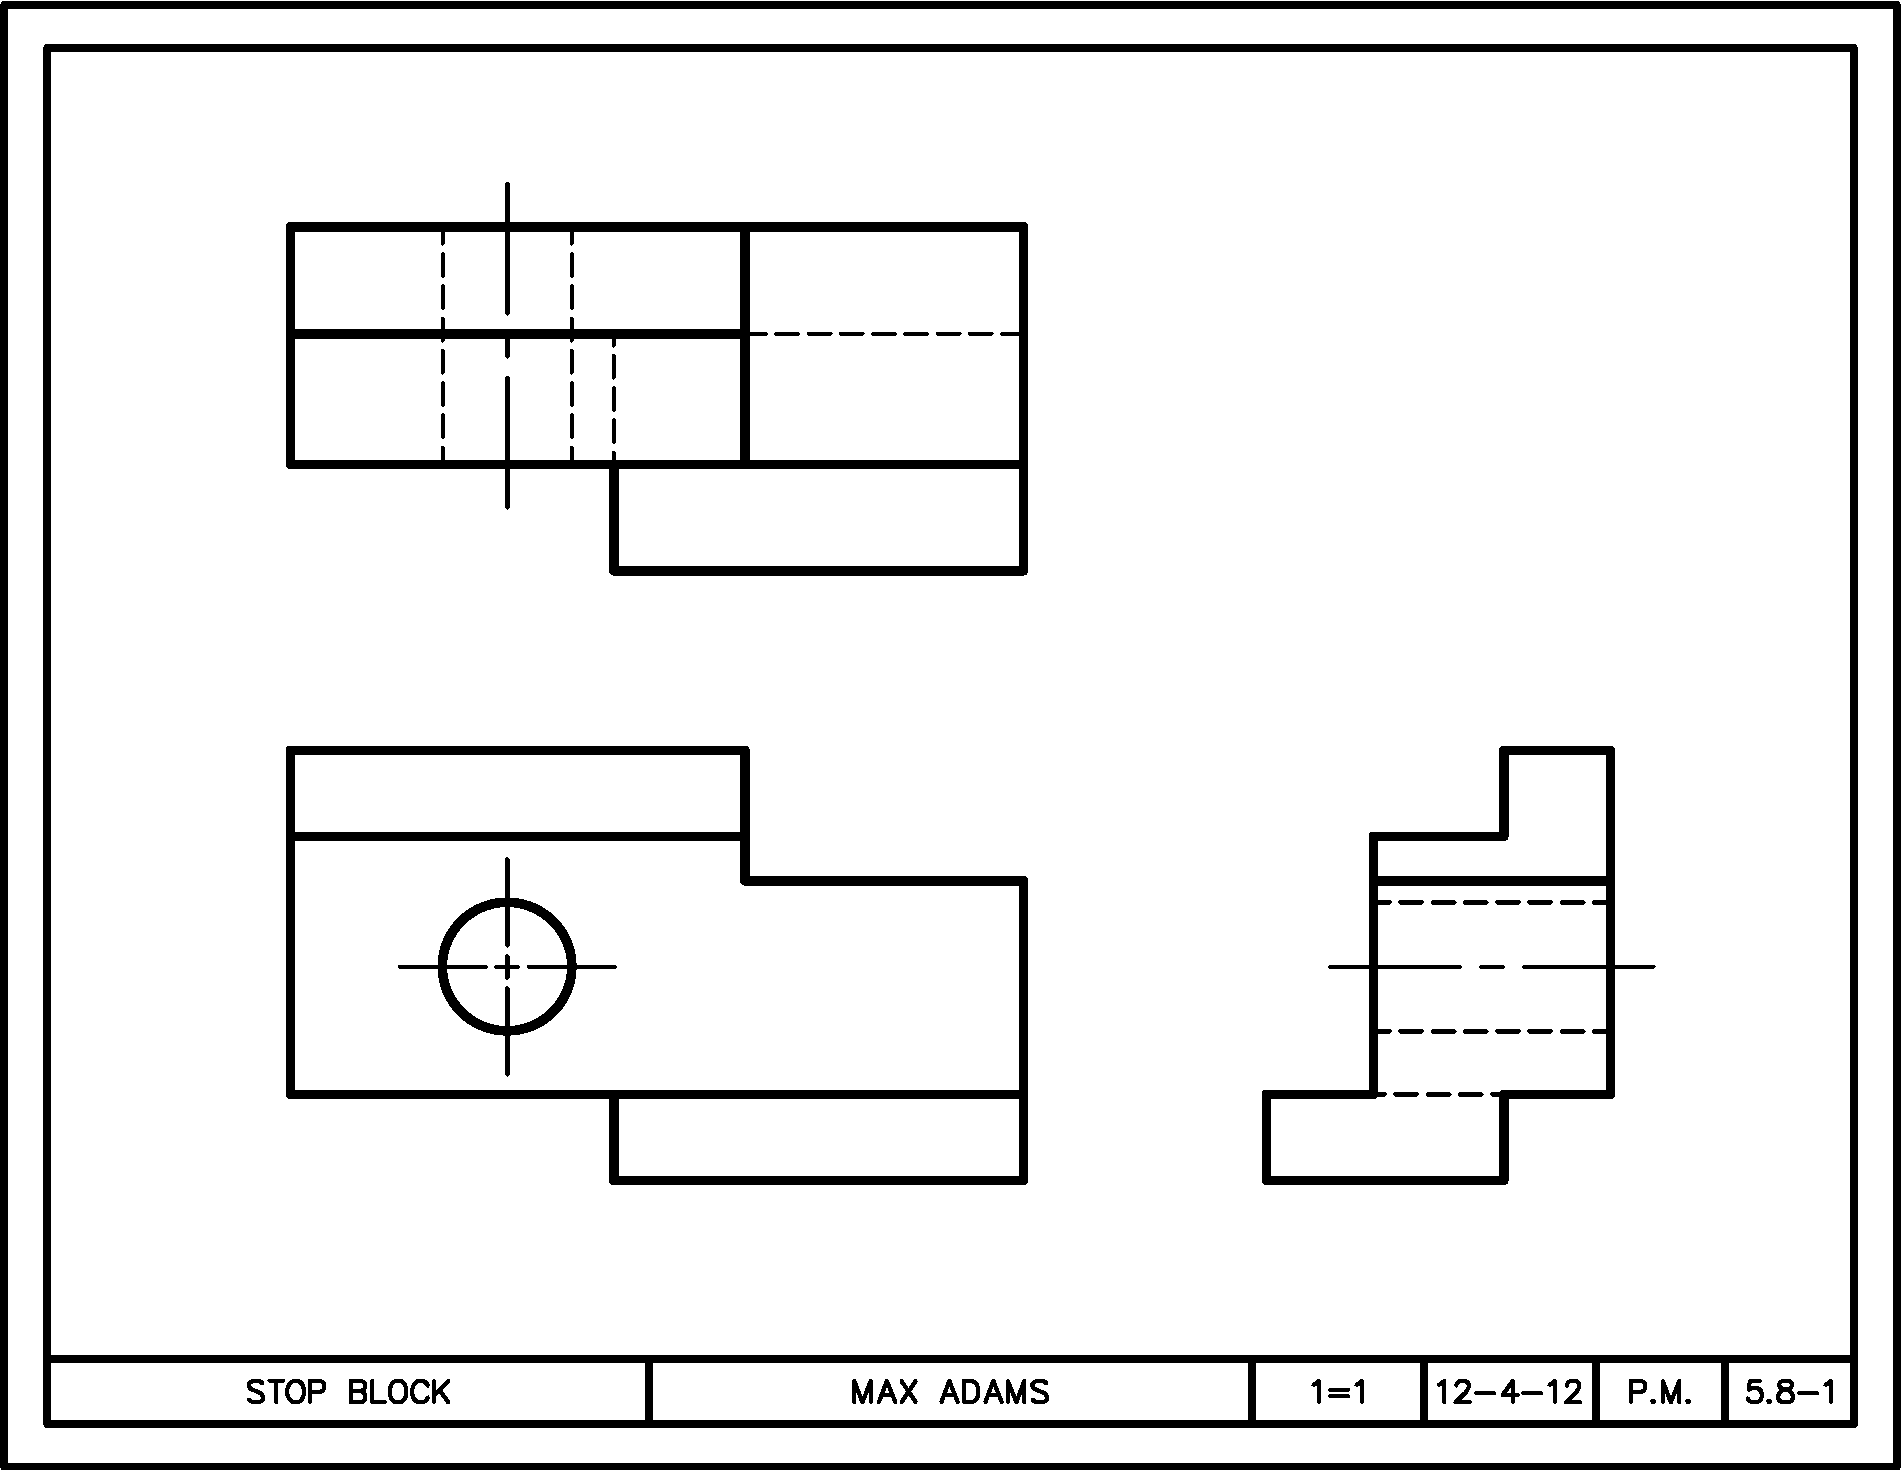 Here Is The Orthographic Views Of The Stop Block Model